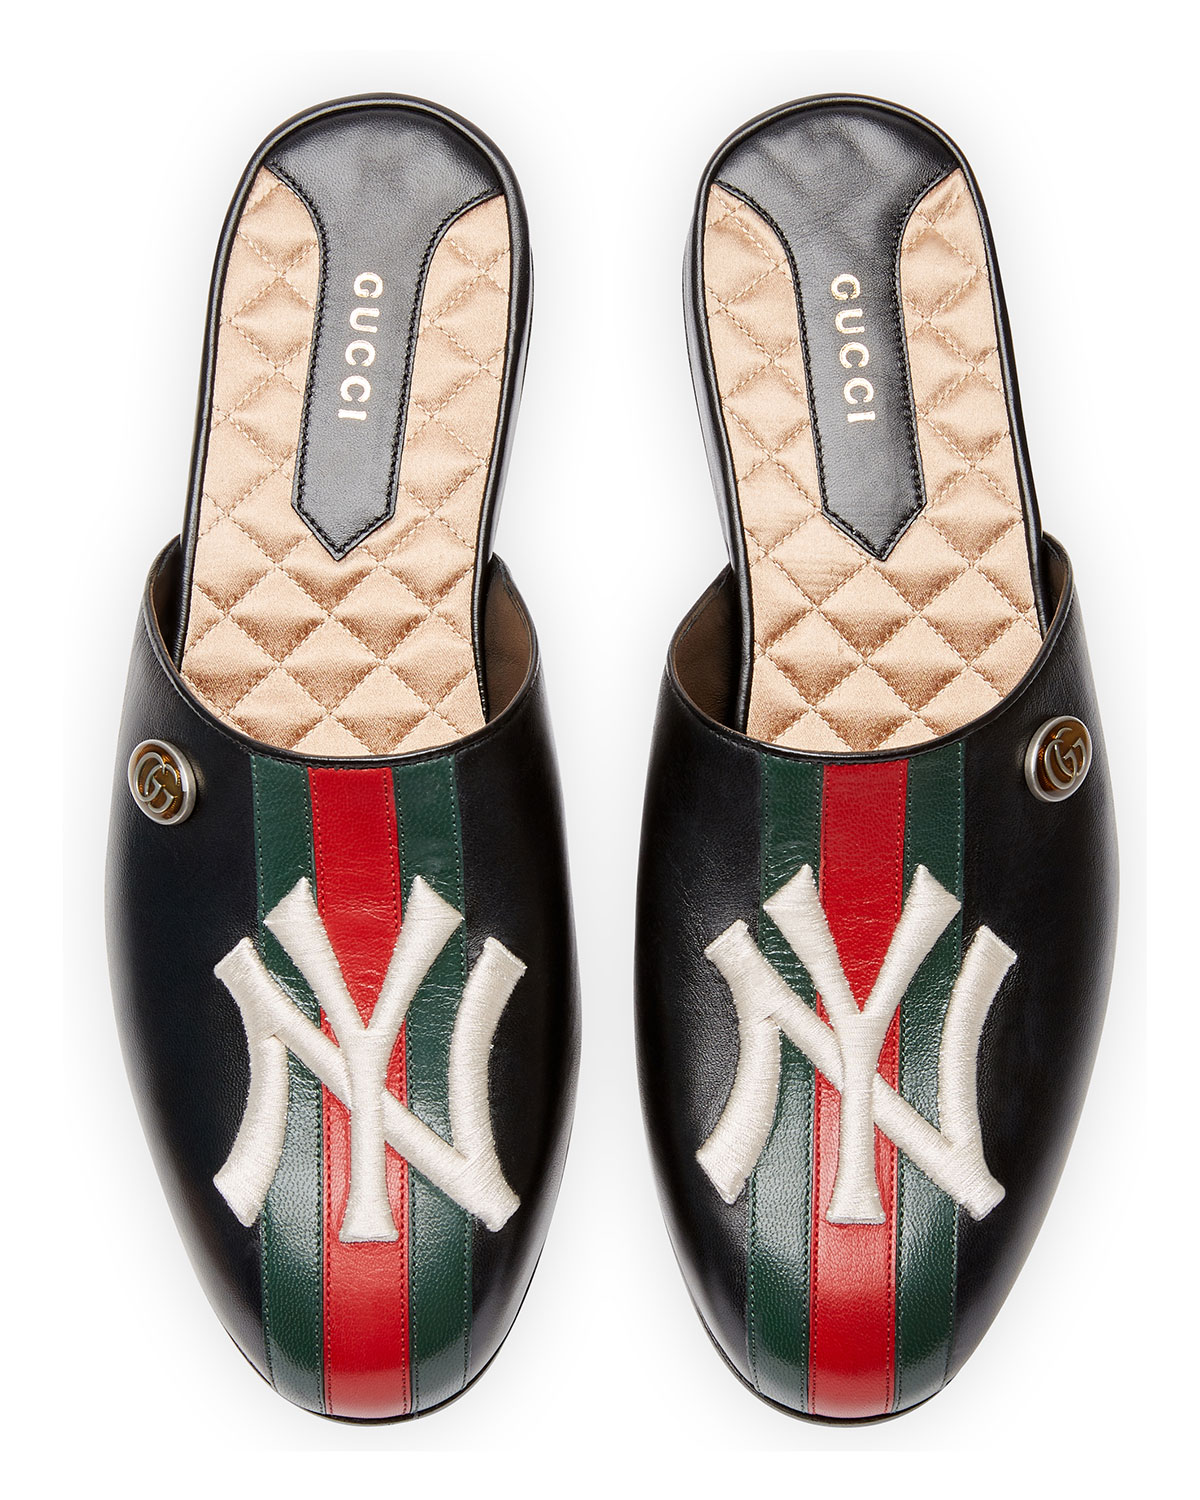 Gucci Leather Slipper with NY Yankees